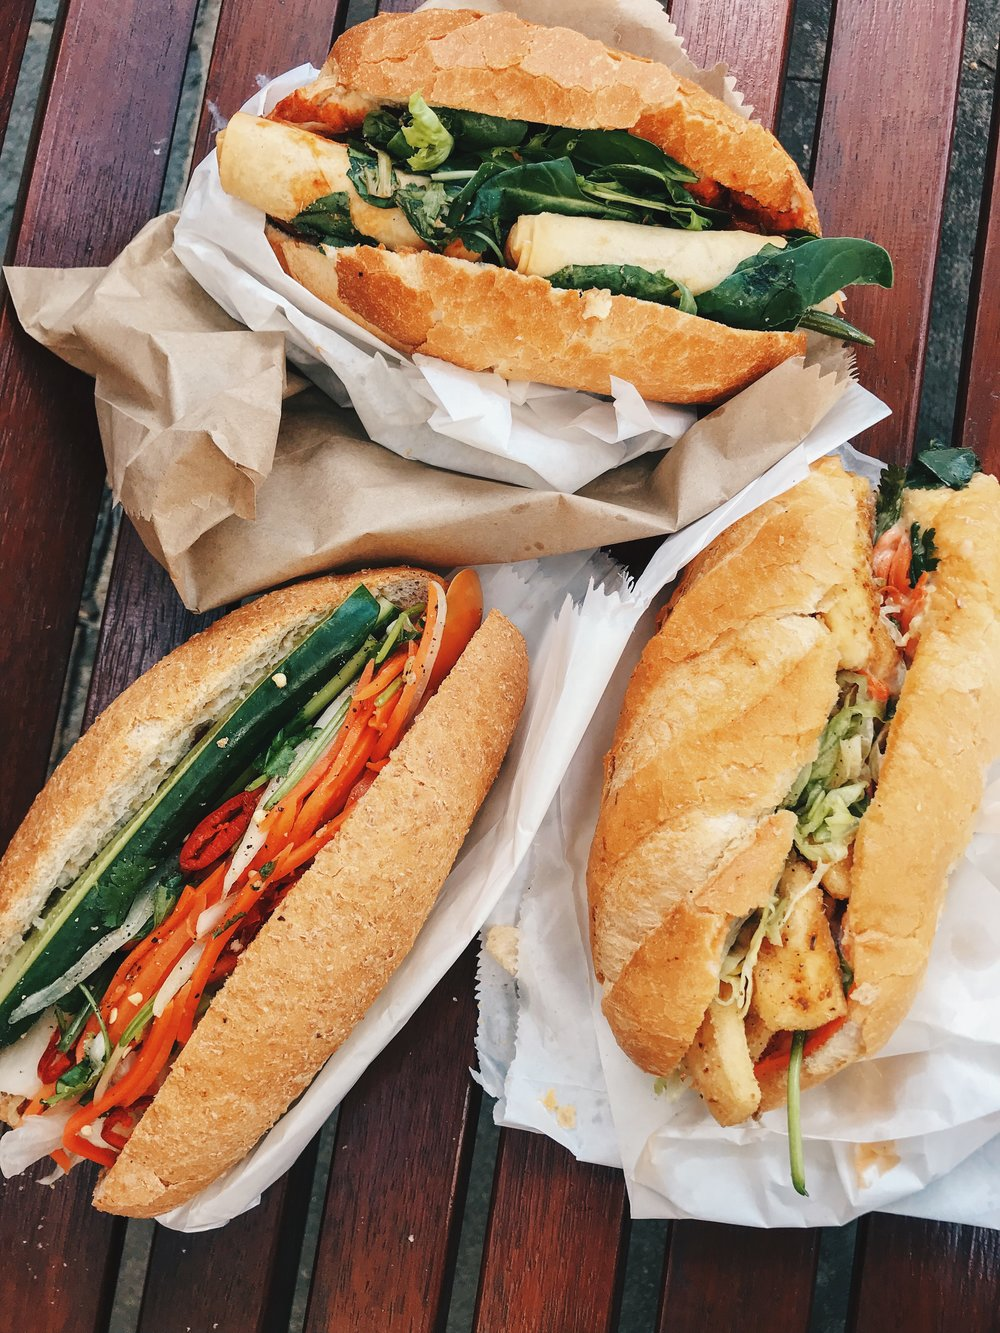 All the Banh Mi I picked up from Pyrmont. Top: OBUNMEE, Left: Banh Mi Co., Right: DK Station.